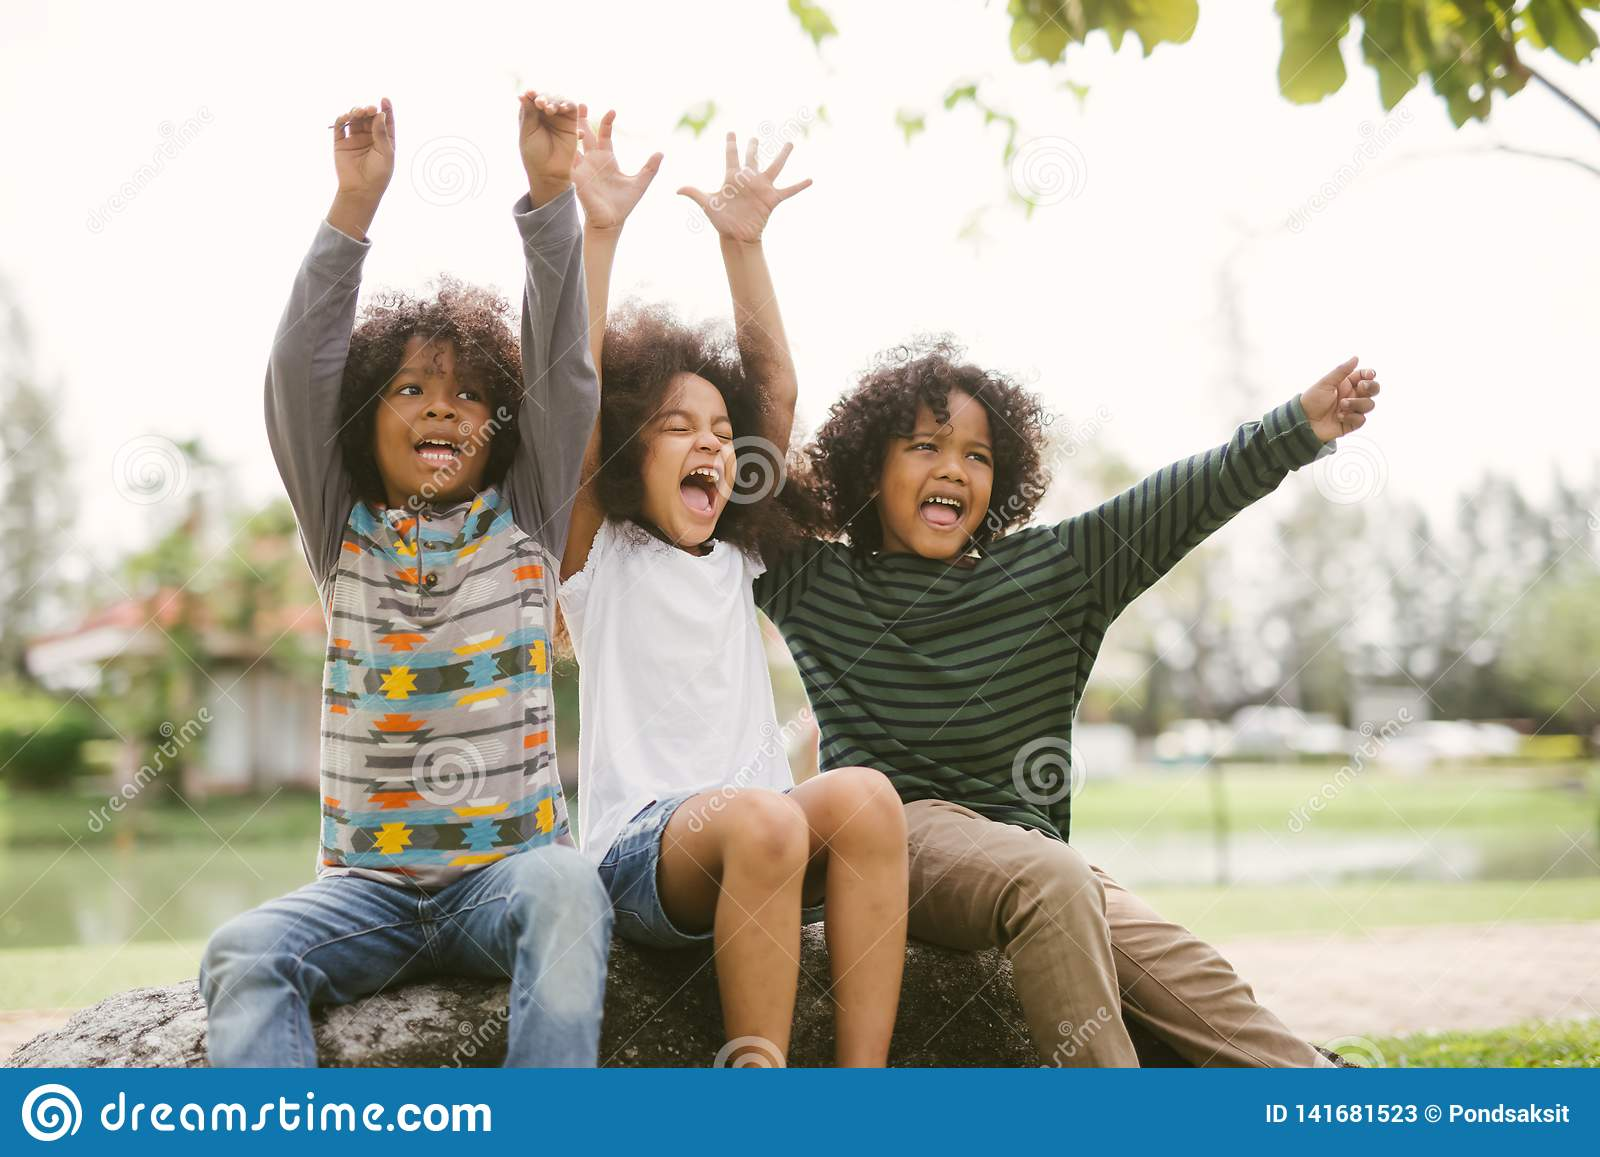 Happy African american little boy kids children joyfully cheerful and laughing. Concept of happiness.